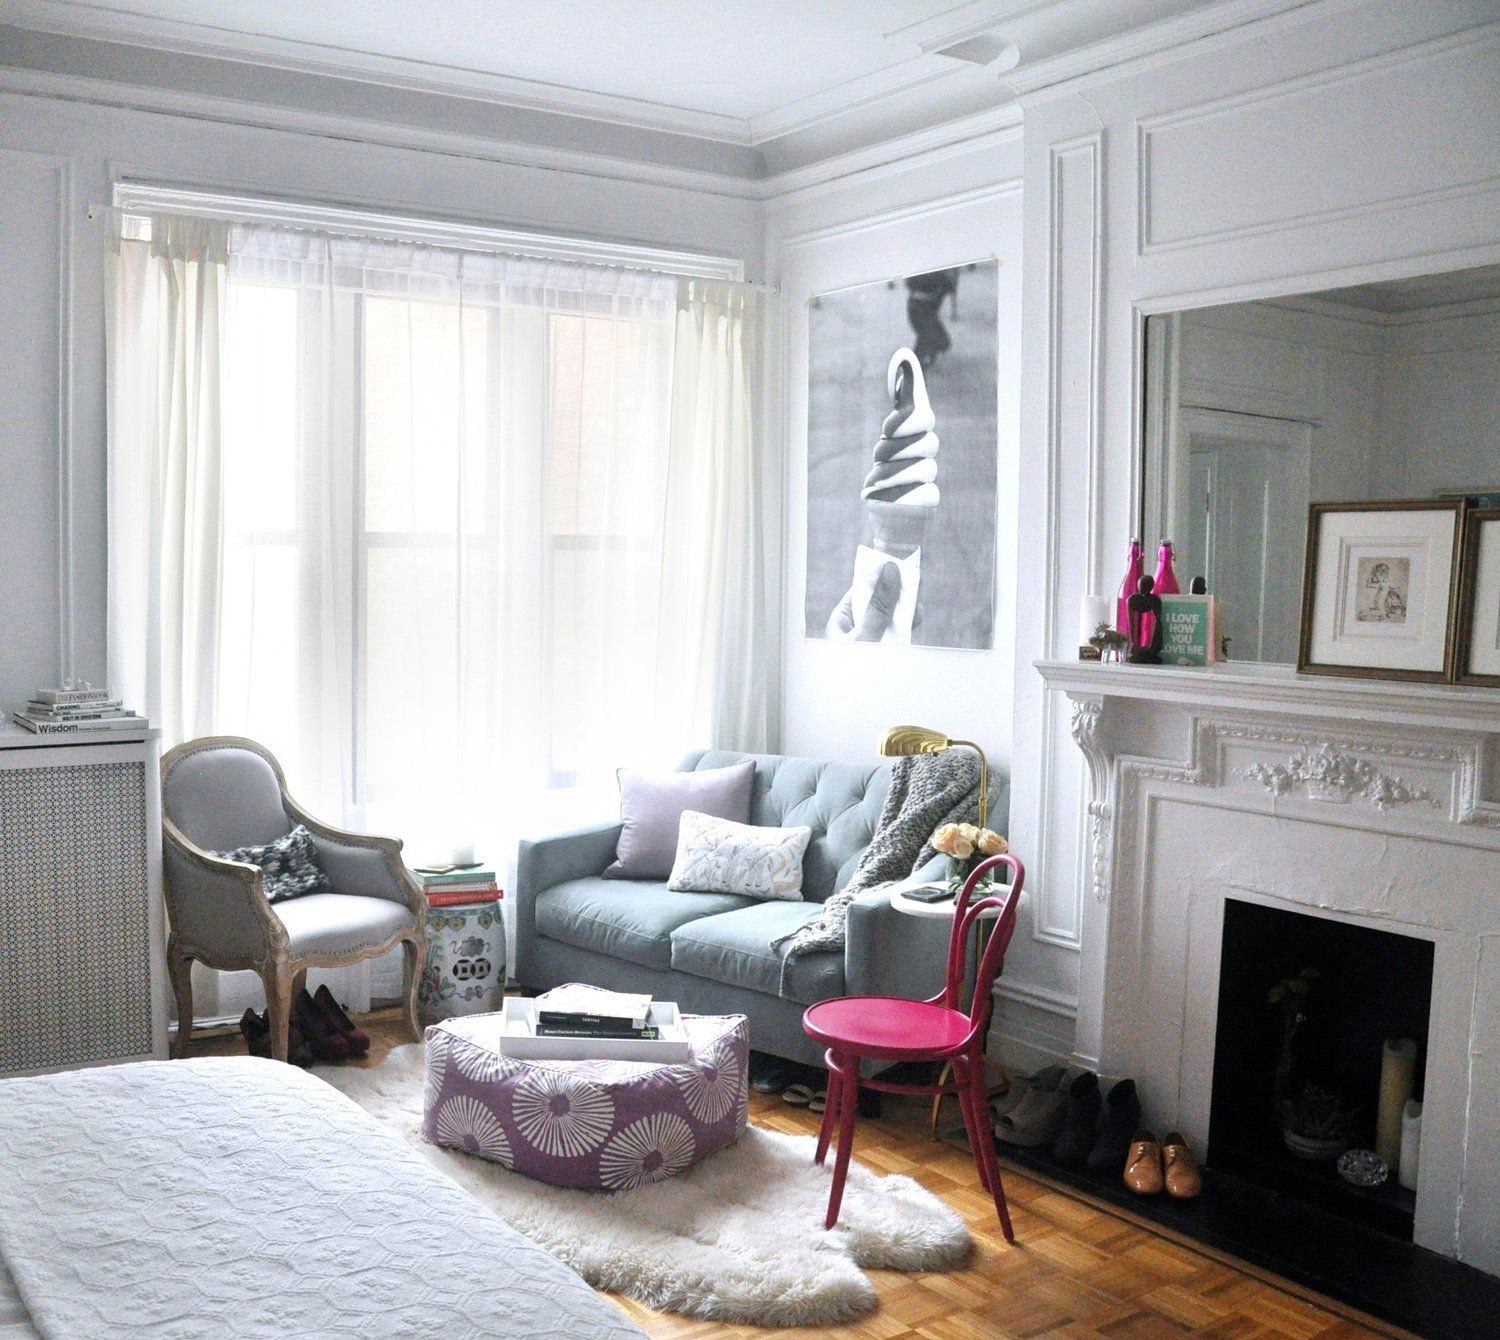 Our Best Tips for Small Space Living | Apartment therapy, Small ...